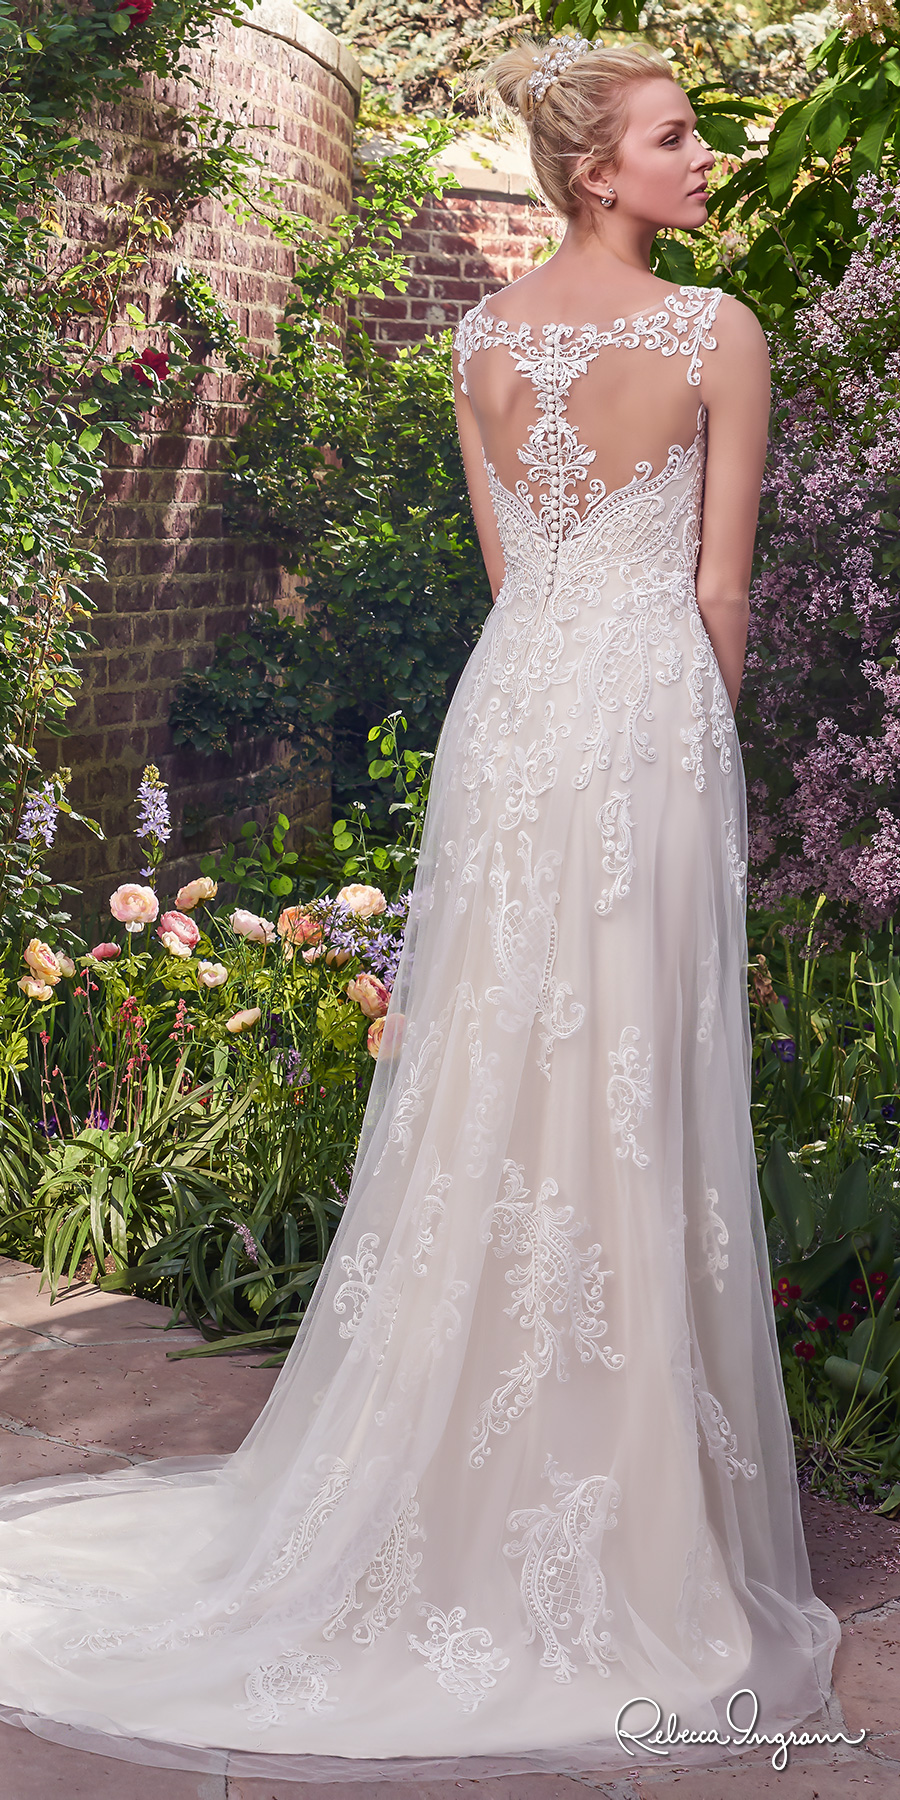 rebecca ingram 2017 bridal sleeveless lace strap illusion scoop sweetheart neckline heavily embellished bodice romantic modified a line wedding dress lace back sweep train (alexis) bv